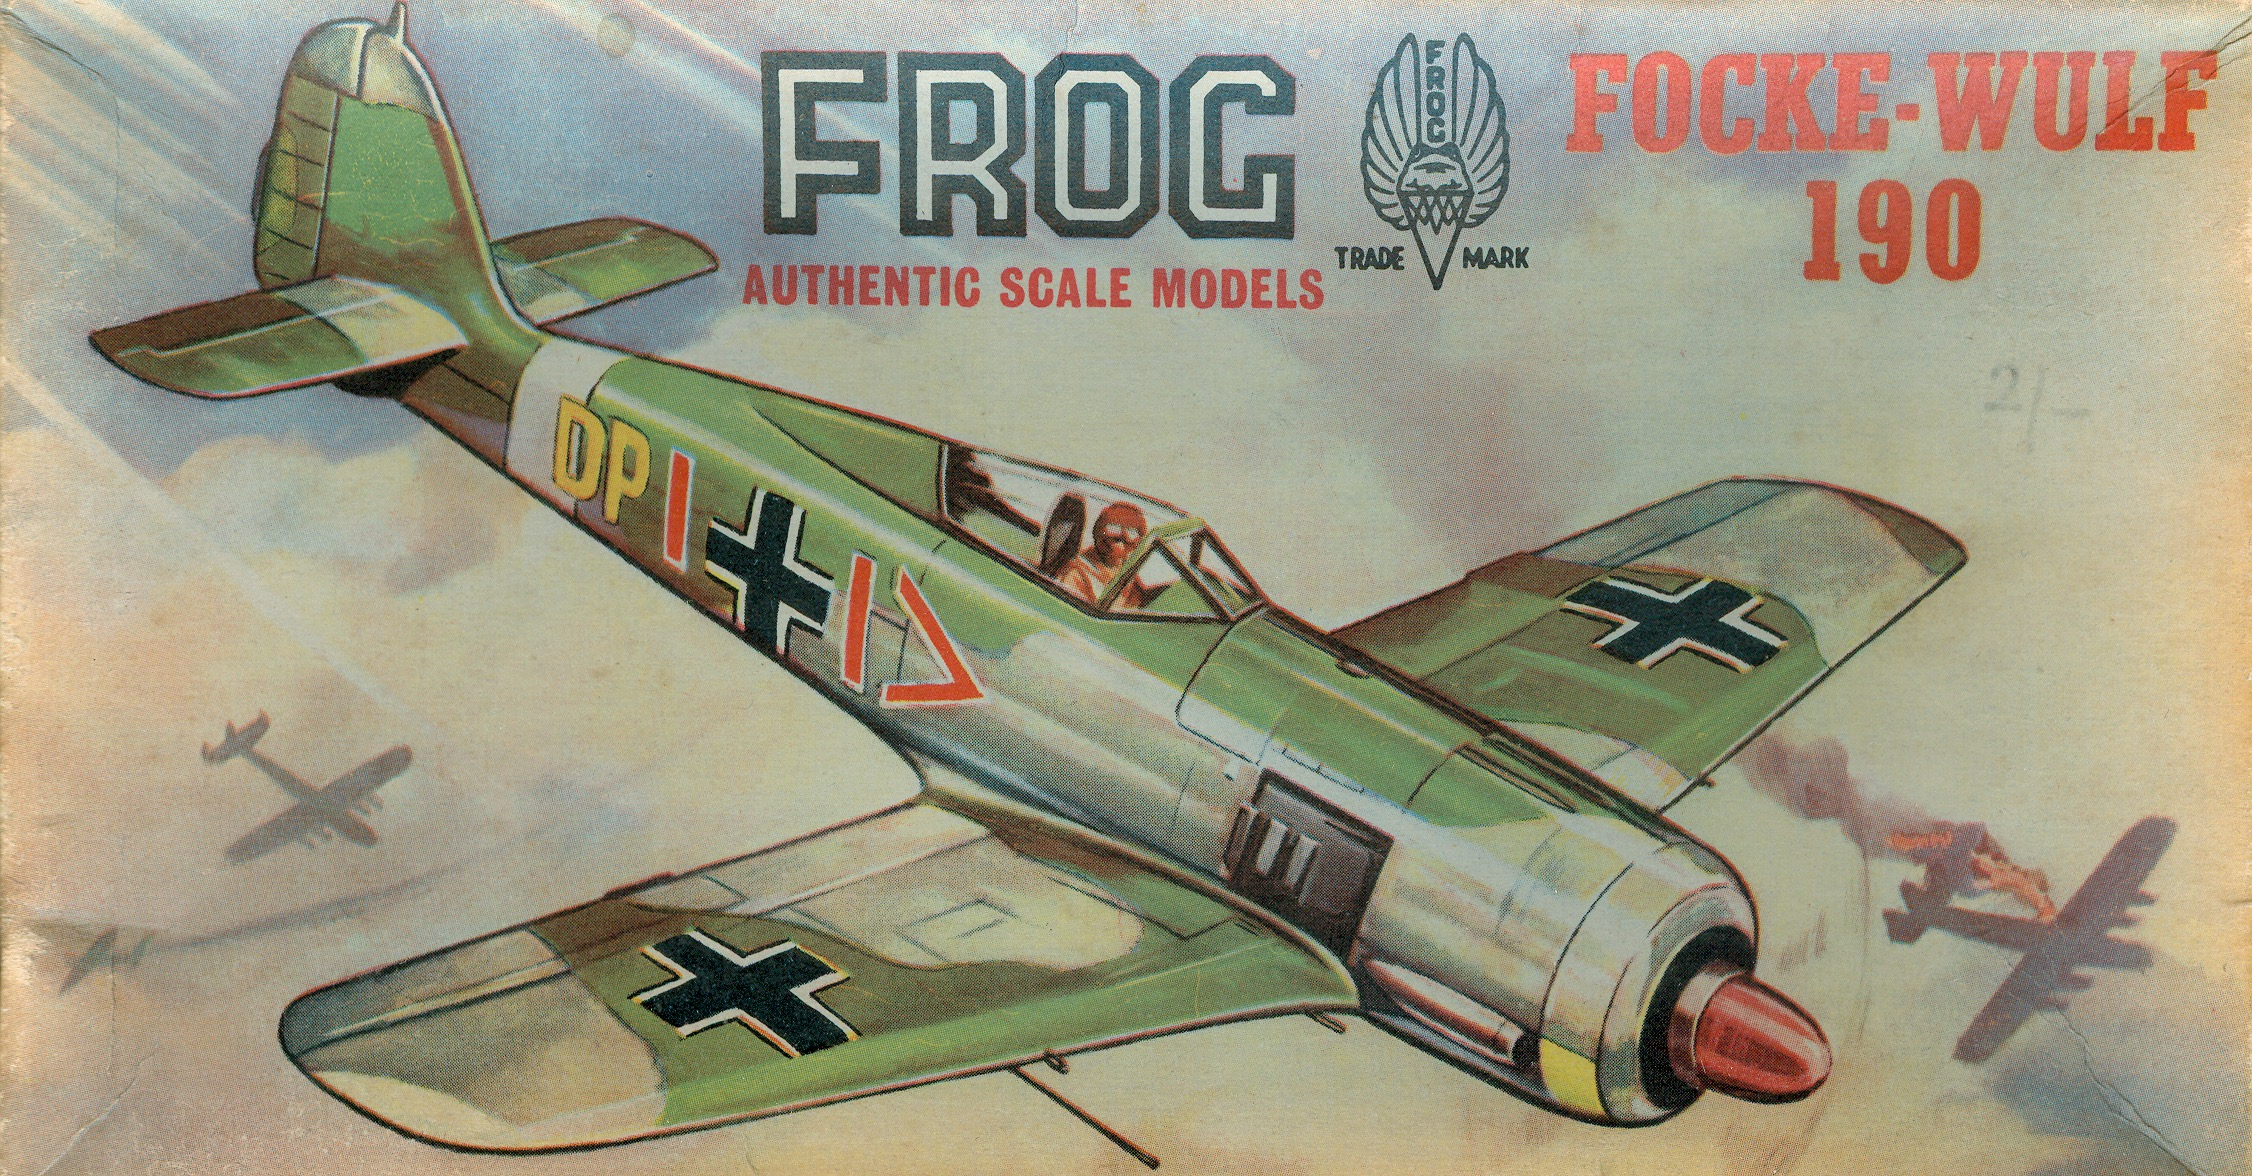 FROG Model Aircraft | Welcome to the site & Forum of Frog